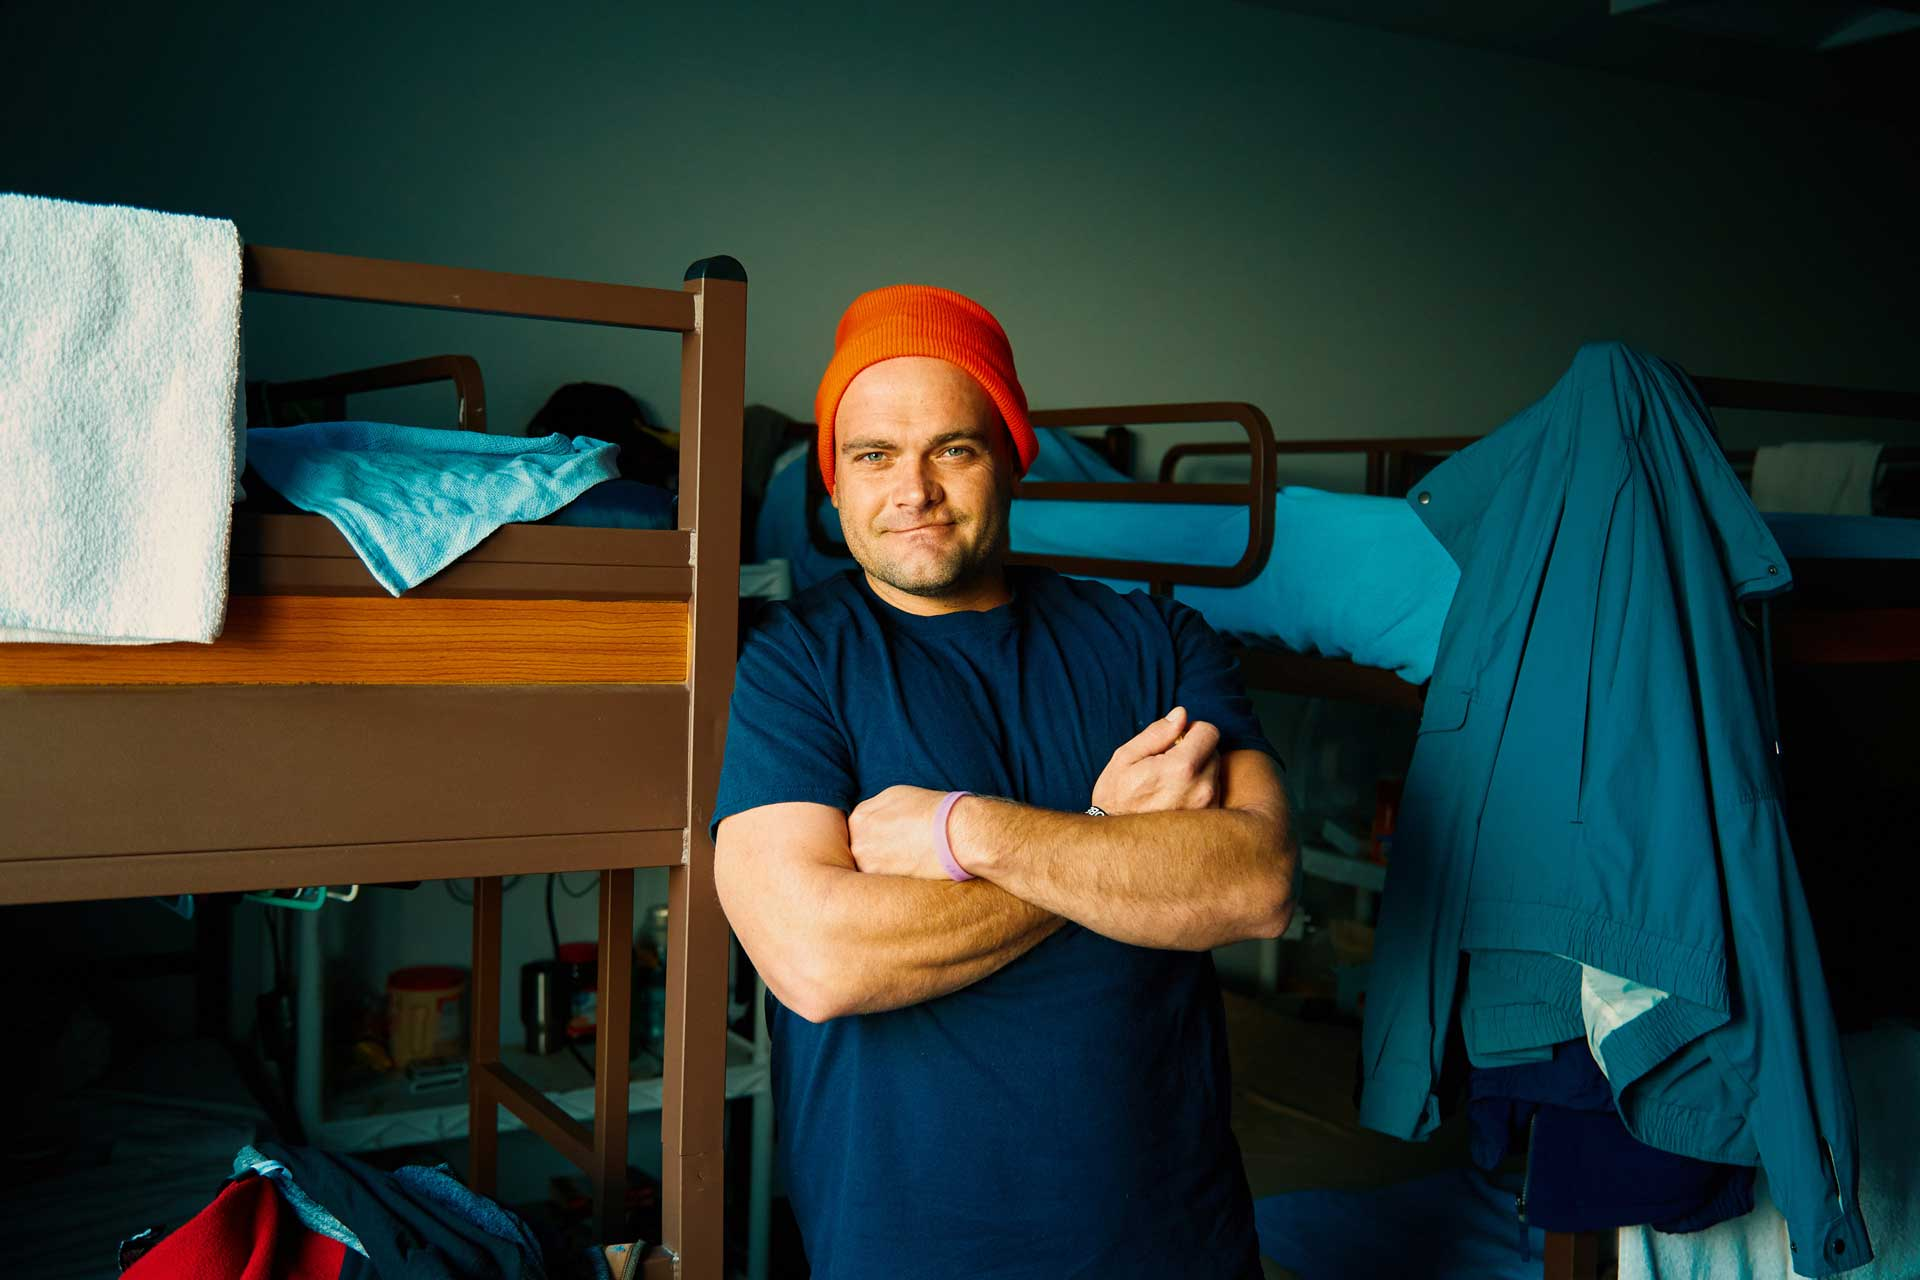 man next to bed arms crossed